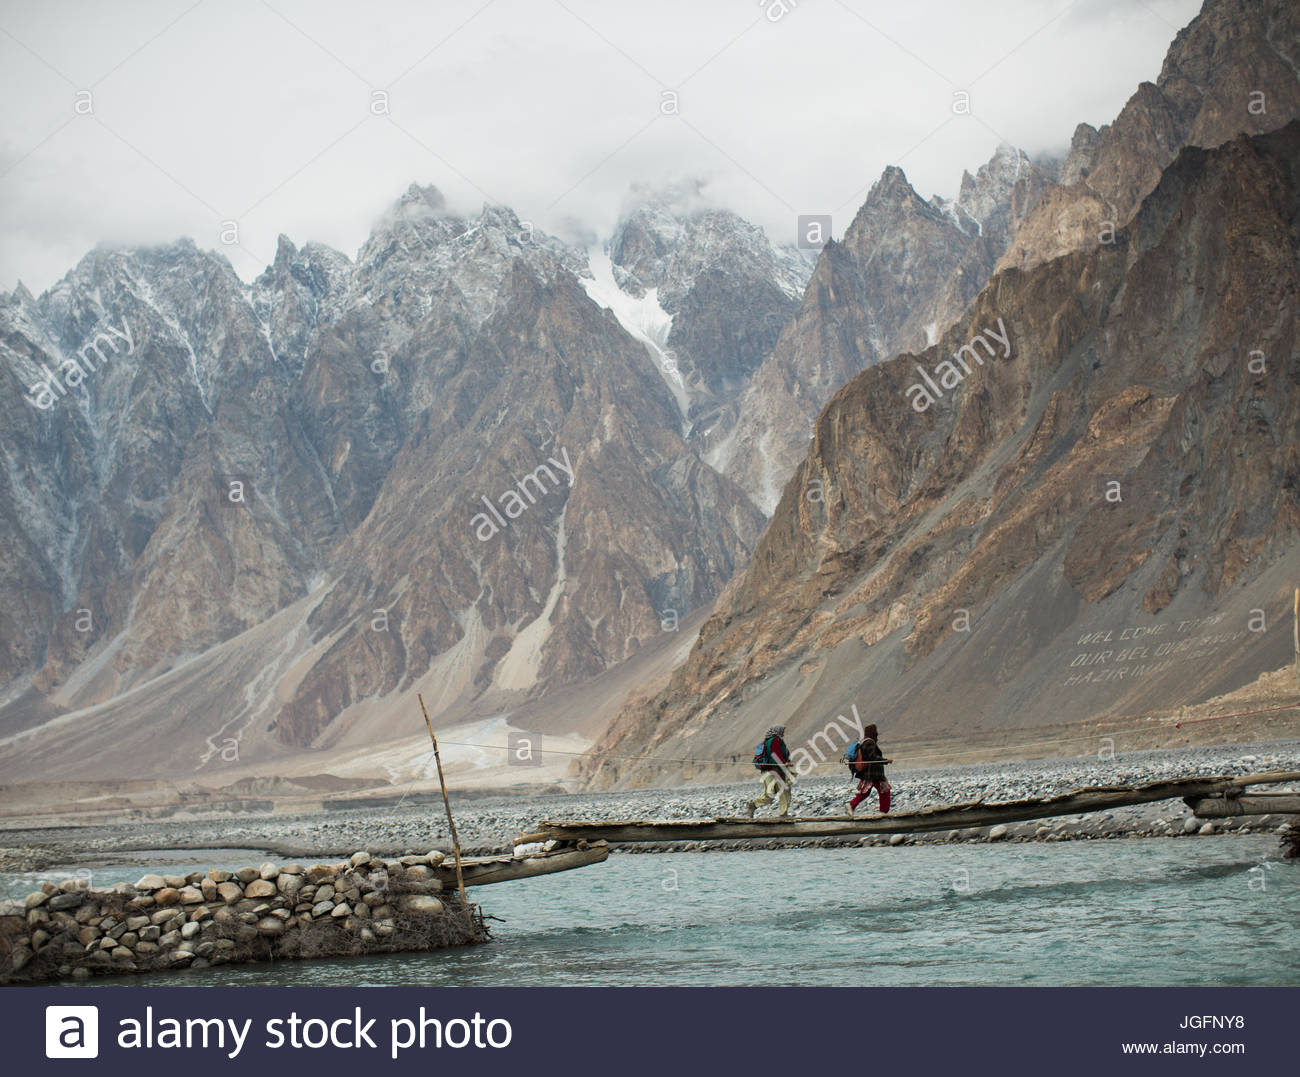 Crossing a river bed in the Hunza Valley, en route to getting wood for cooking and heating in Khuramabad. - Stock Image